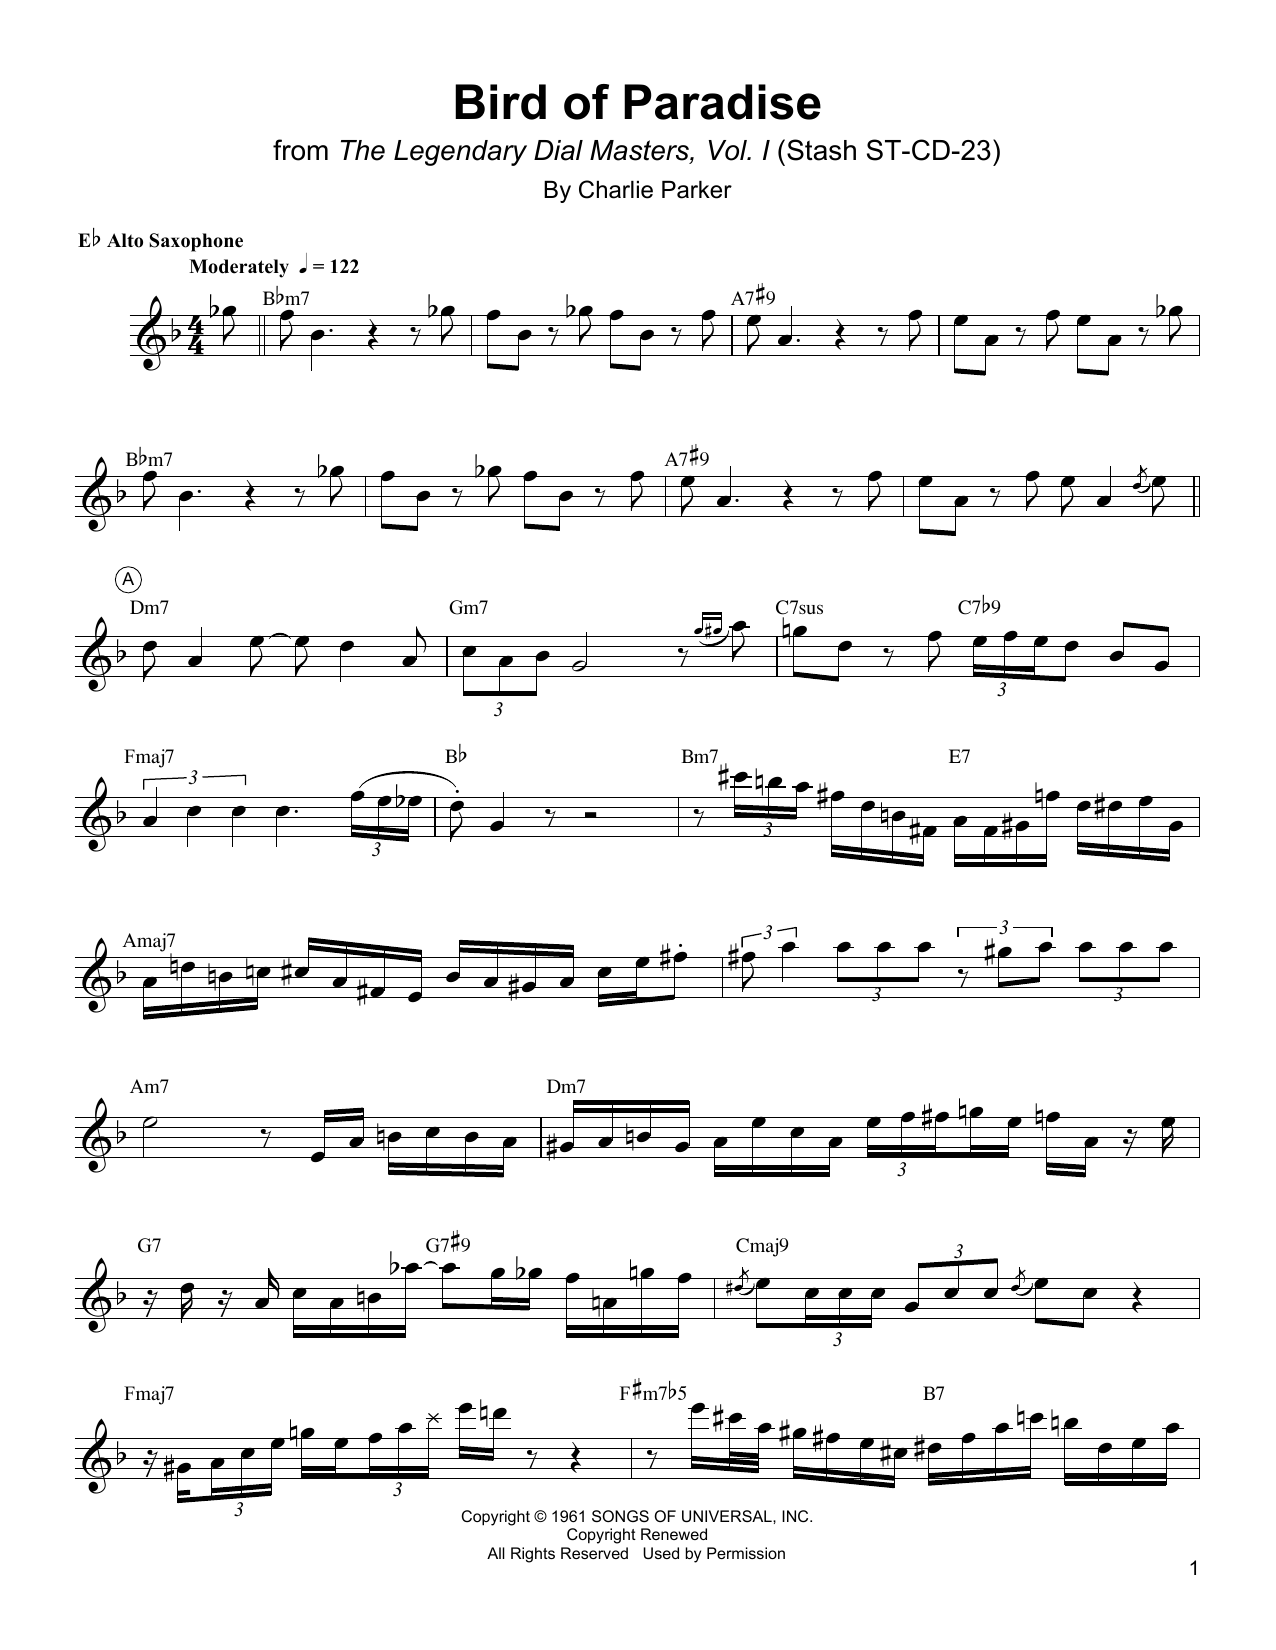 Charlie Parker Bird Of Paradise sheet music notes and chords. Download Printable PDF.